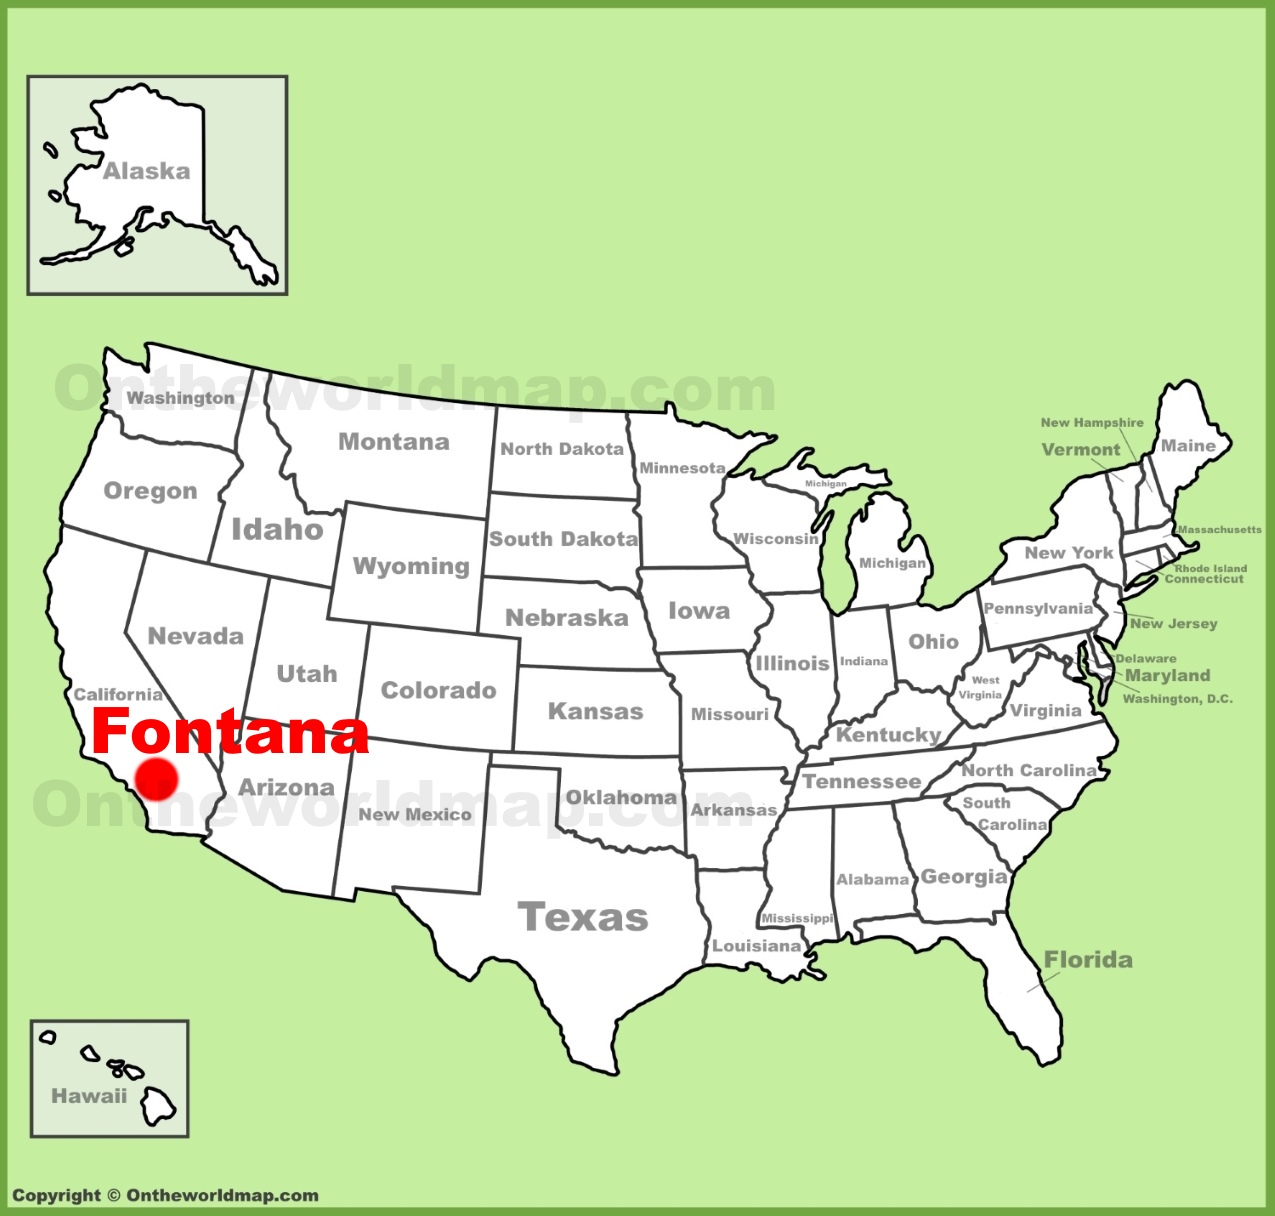 Fontana location on the US Map